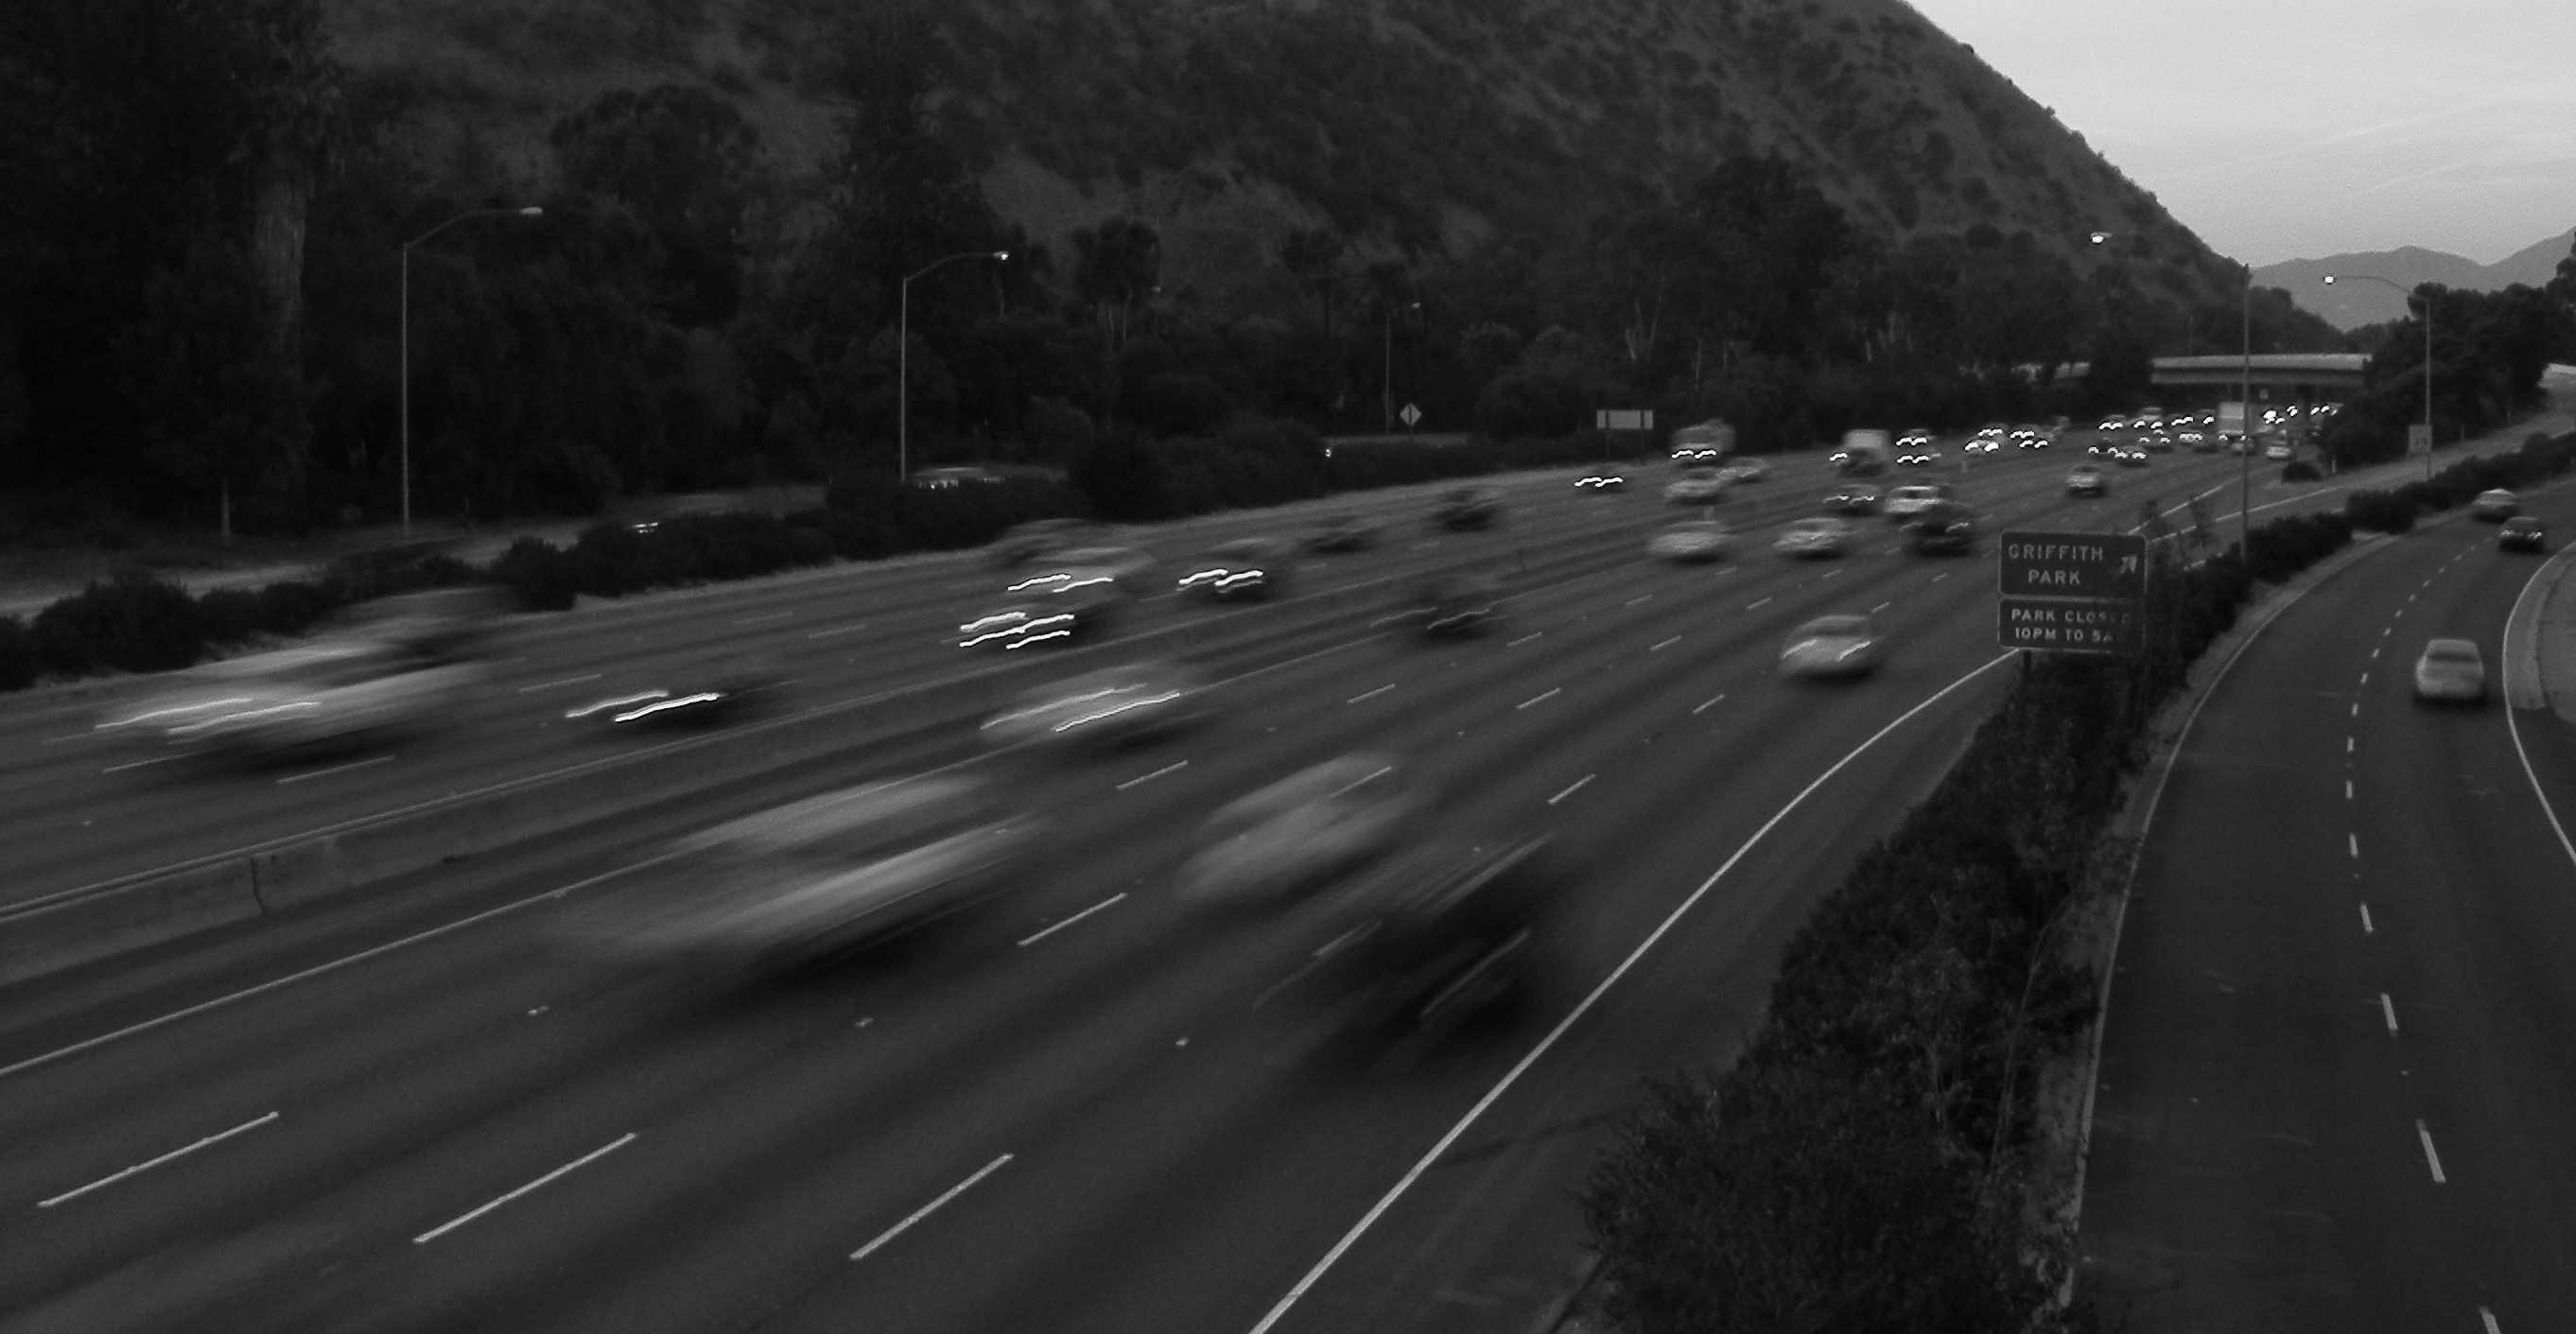 5 freeway, griffith park